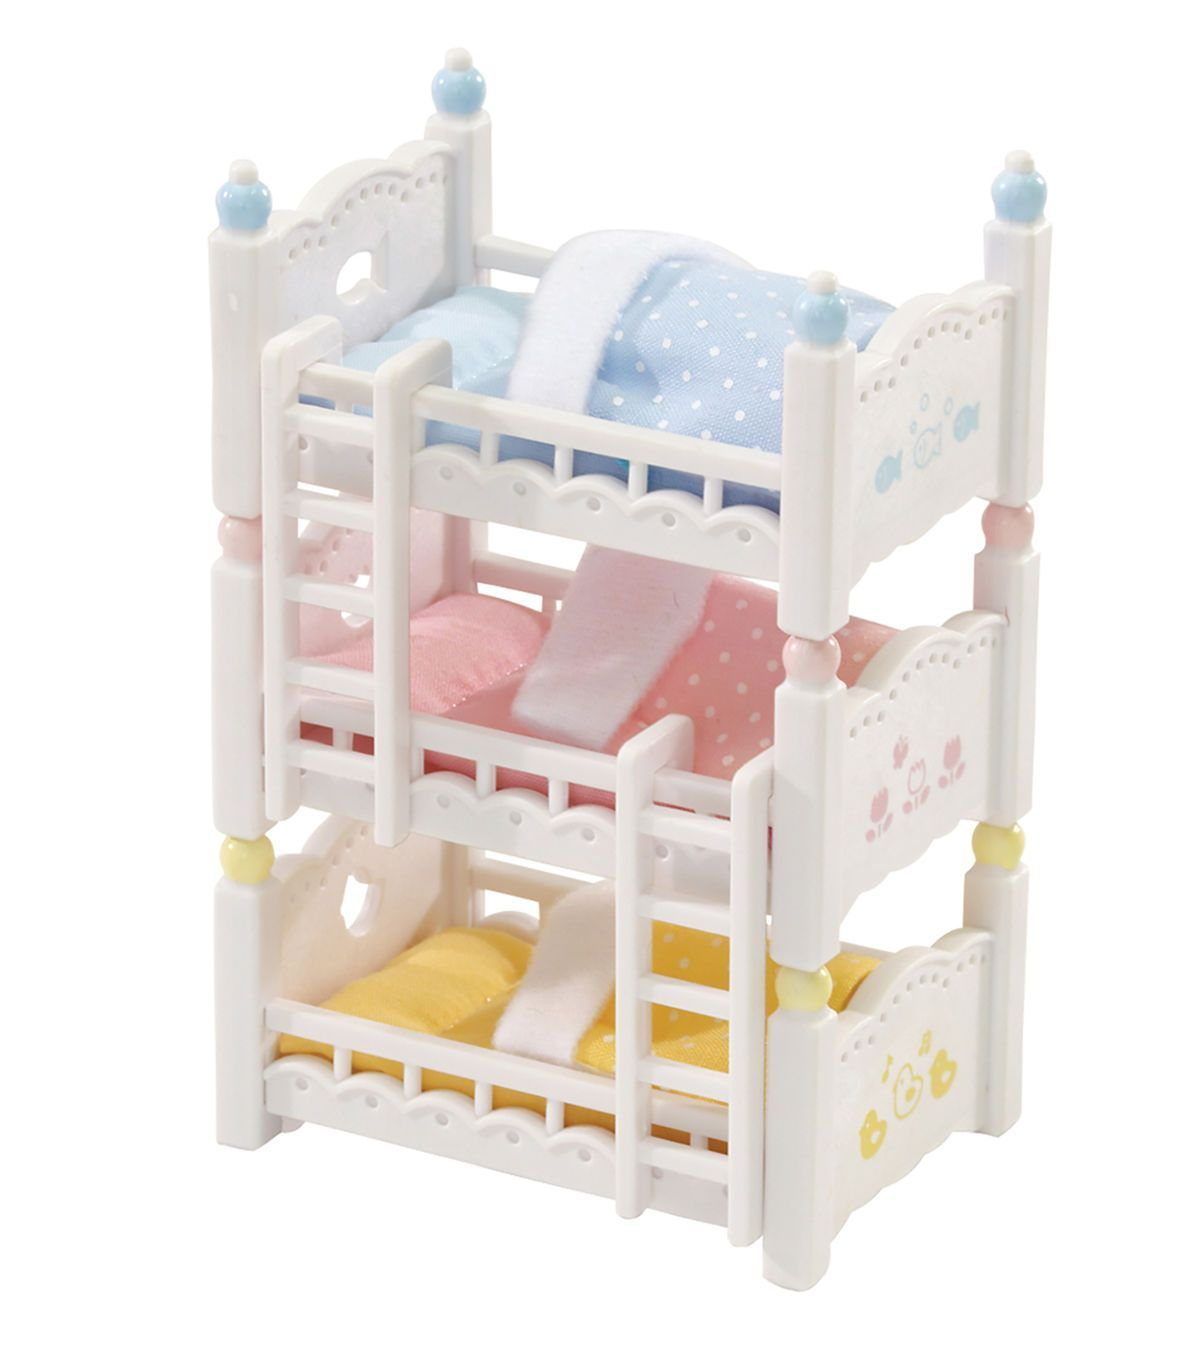 Calico Critters Triple Baby Bunk Beds Baby Bunk Beds Bunk Bed